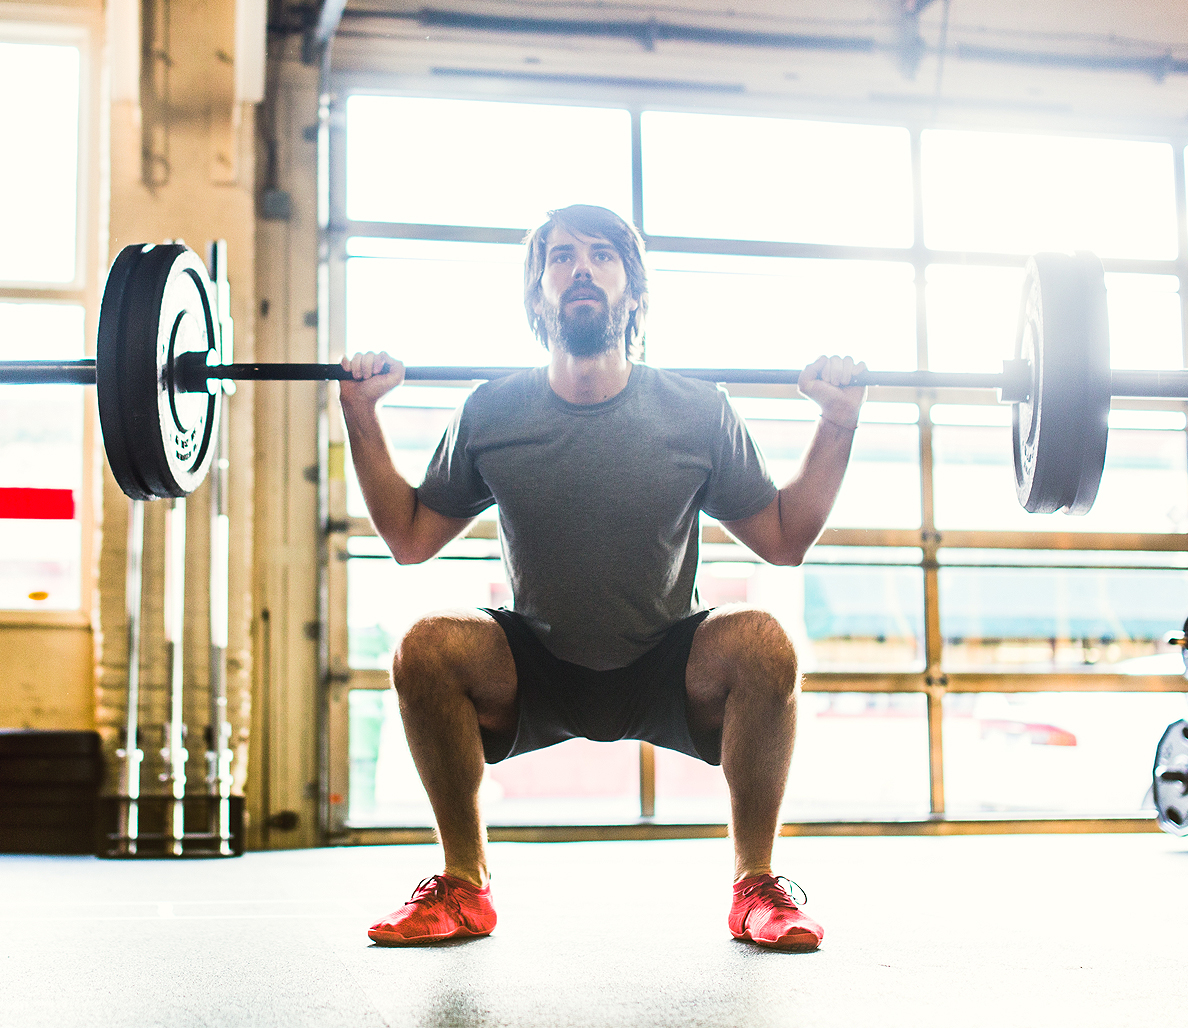 4 ways to prevent knee pain during heavy squats